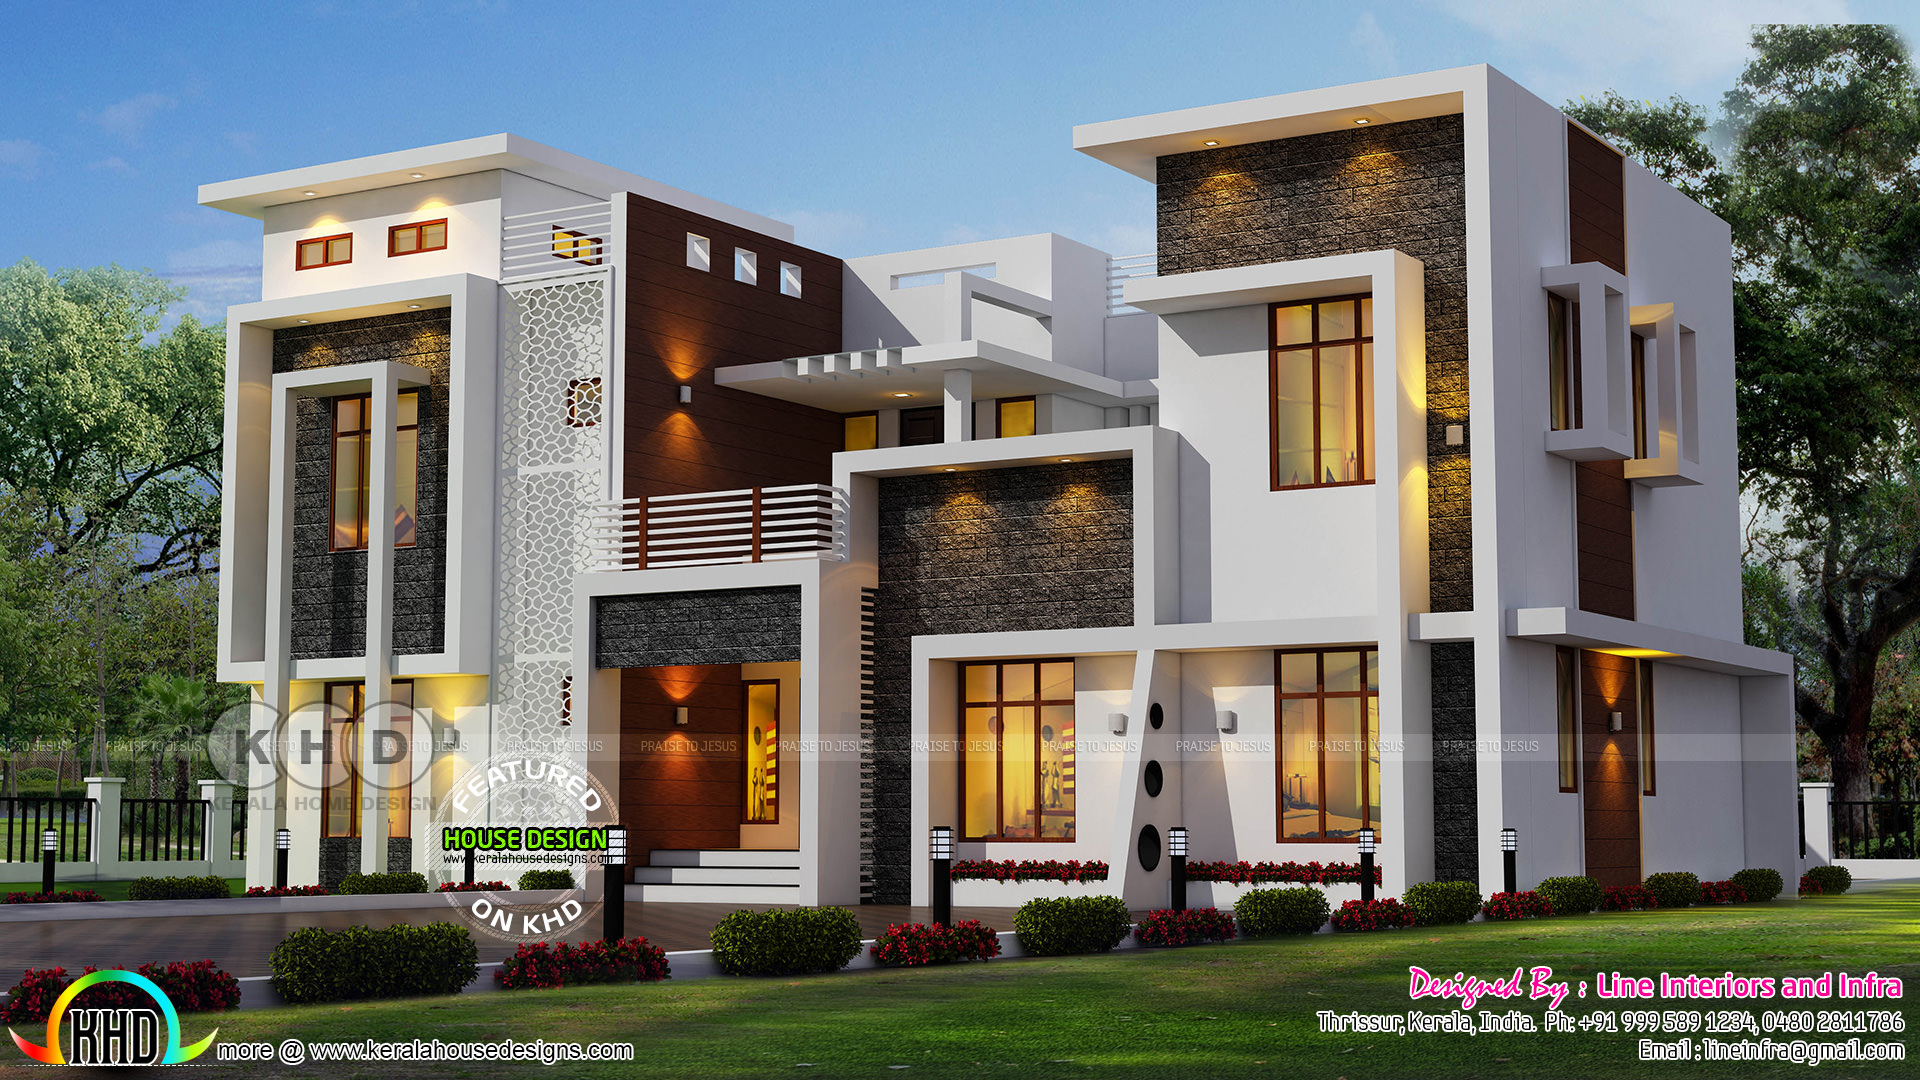 Luxurious modern contemporary kerala home design kerala for Kerala modern house designs